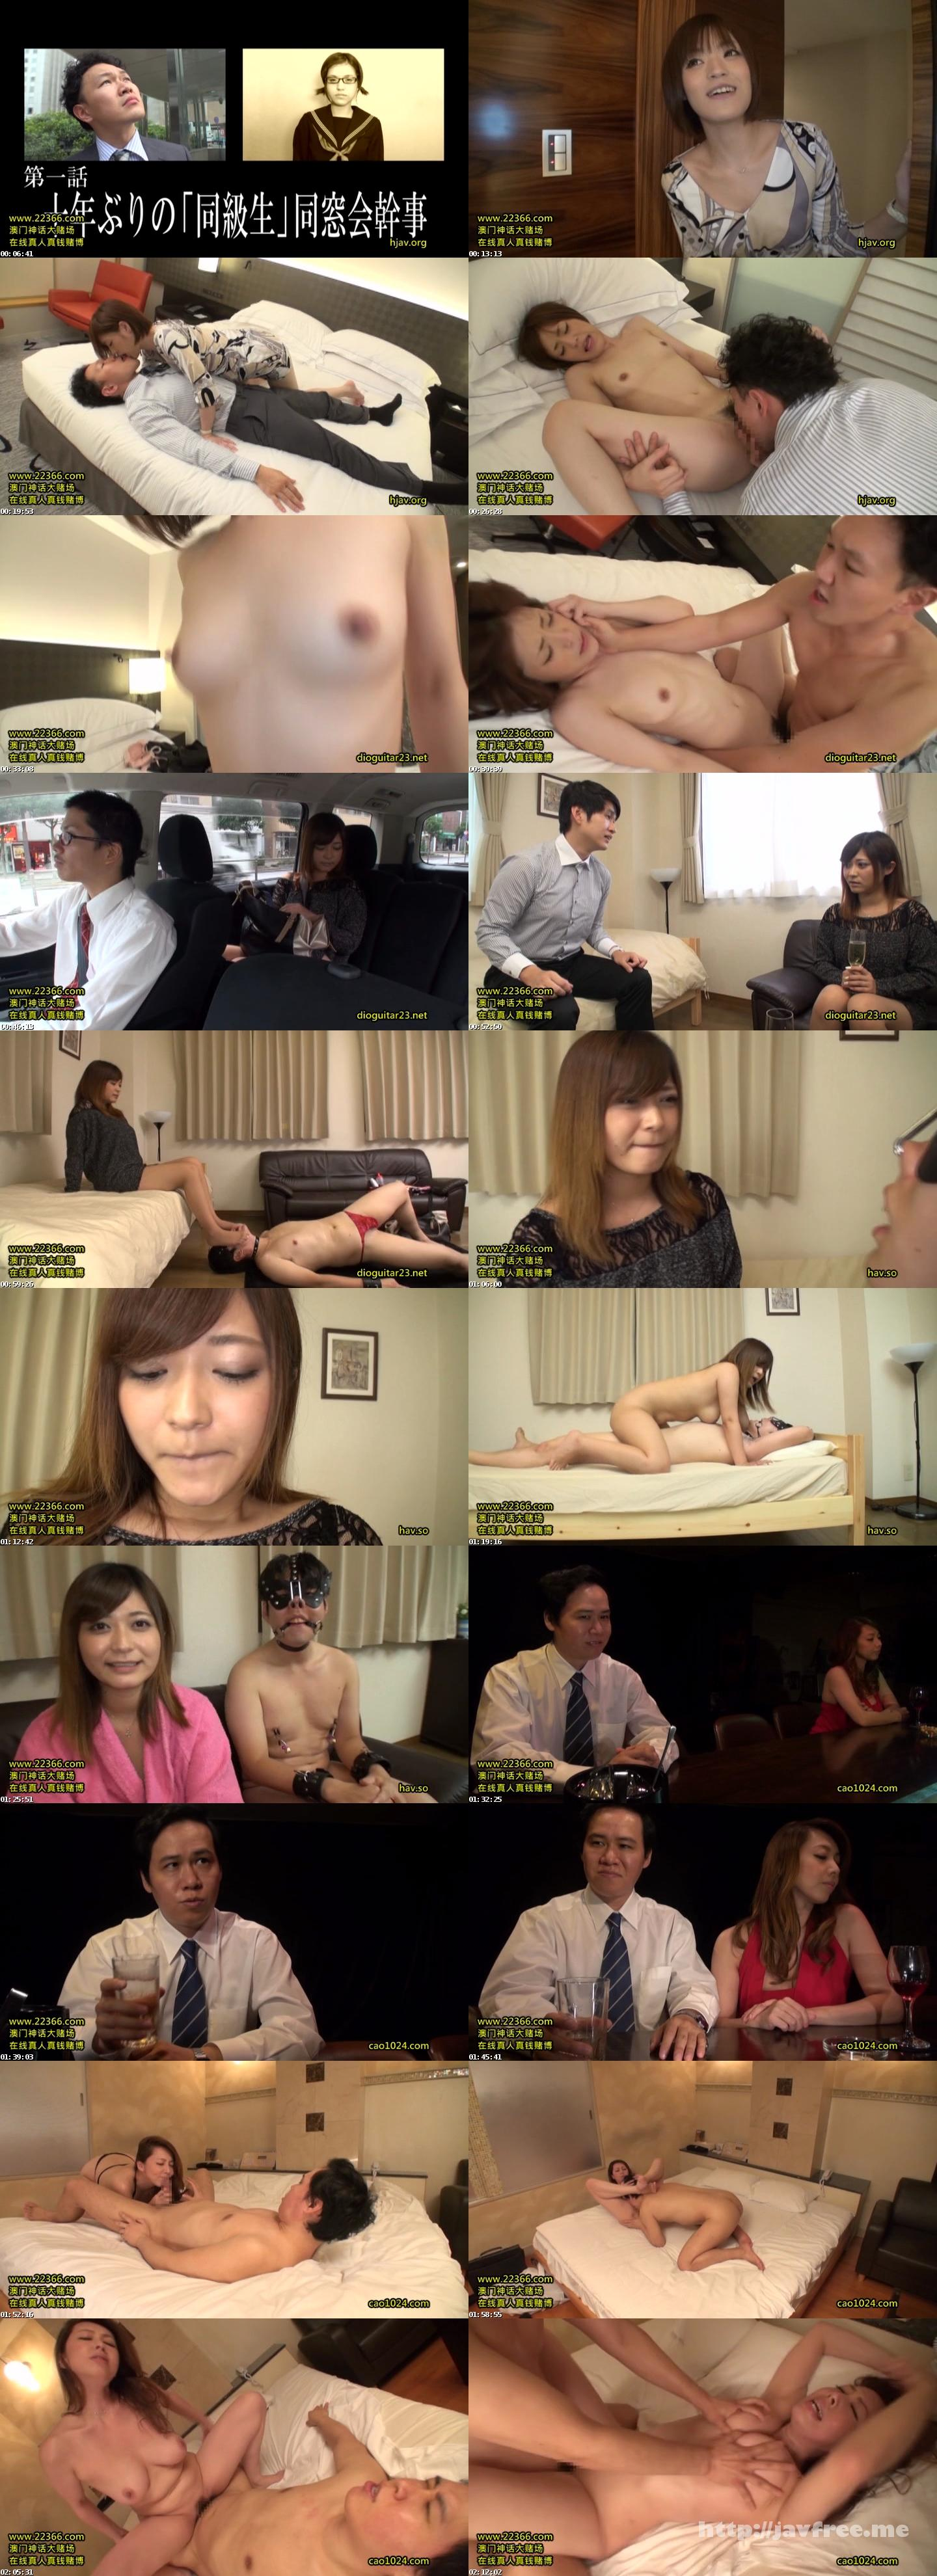 [VRTM-023] 孤独のエロス Season2 - image VRTM-023 on https://javfree.me